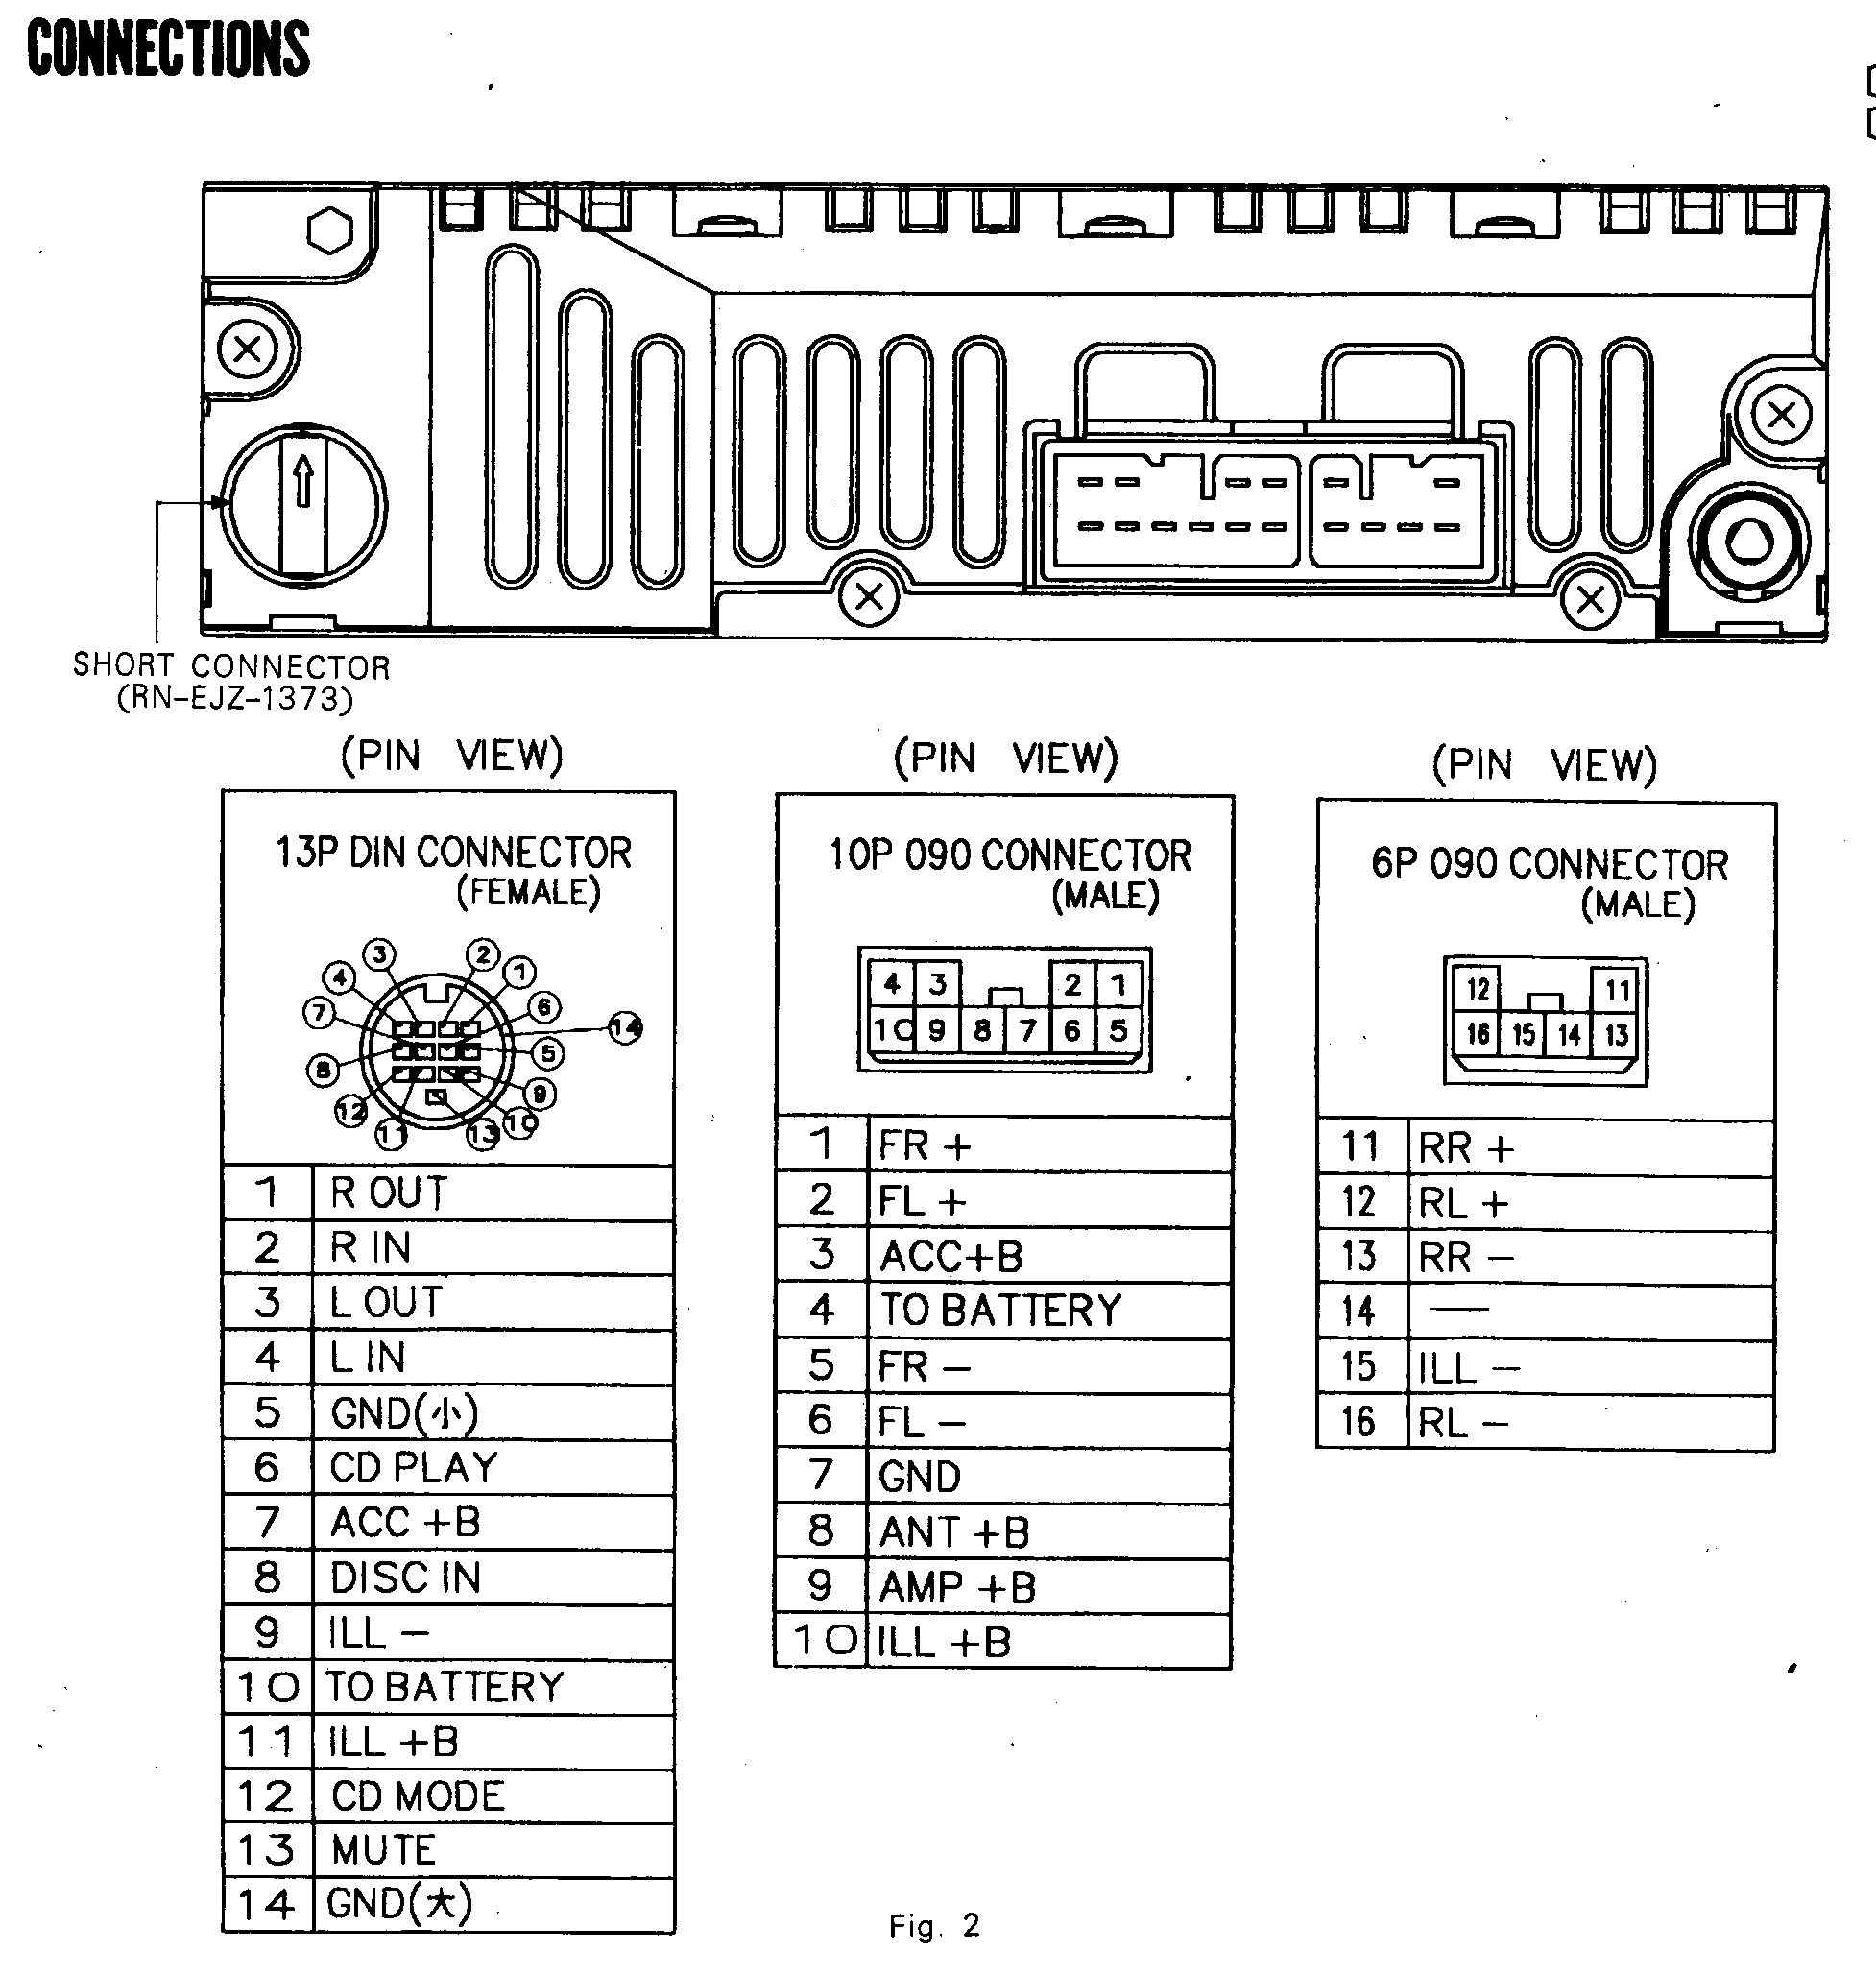 Typical Wiring Diagram Sony Car Stereo from www.carstereohelp.net